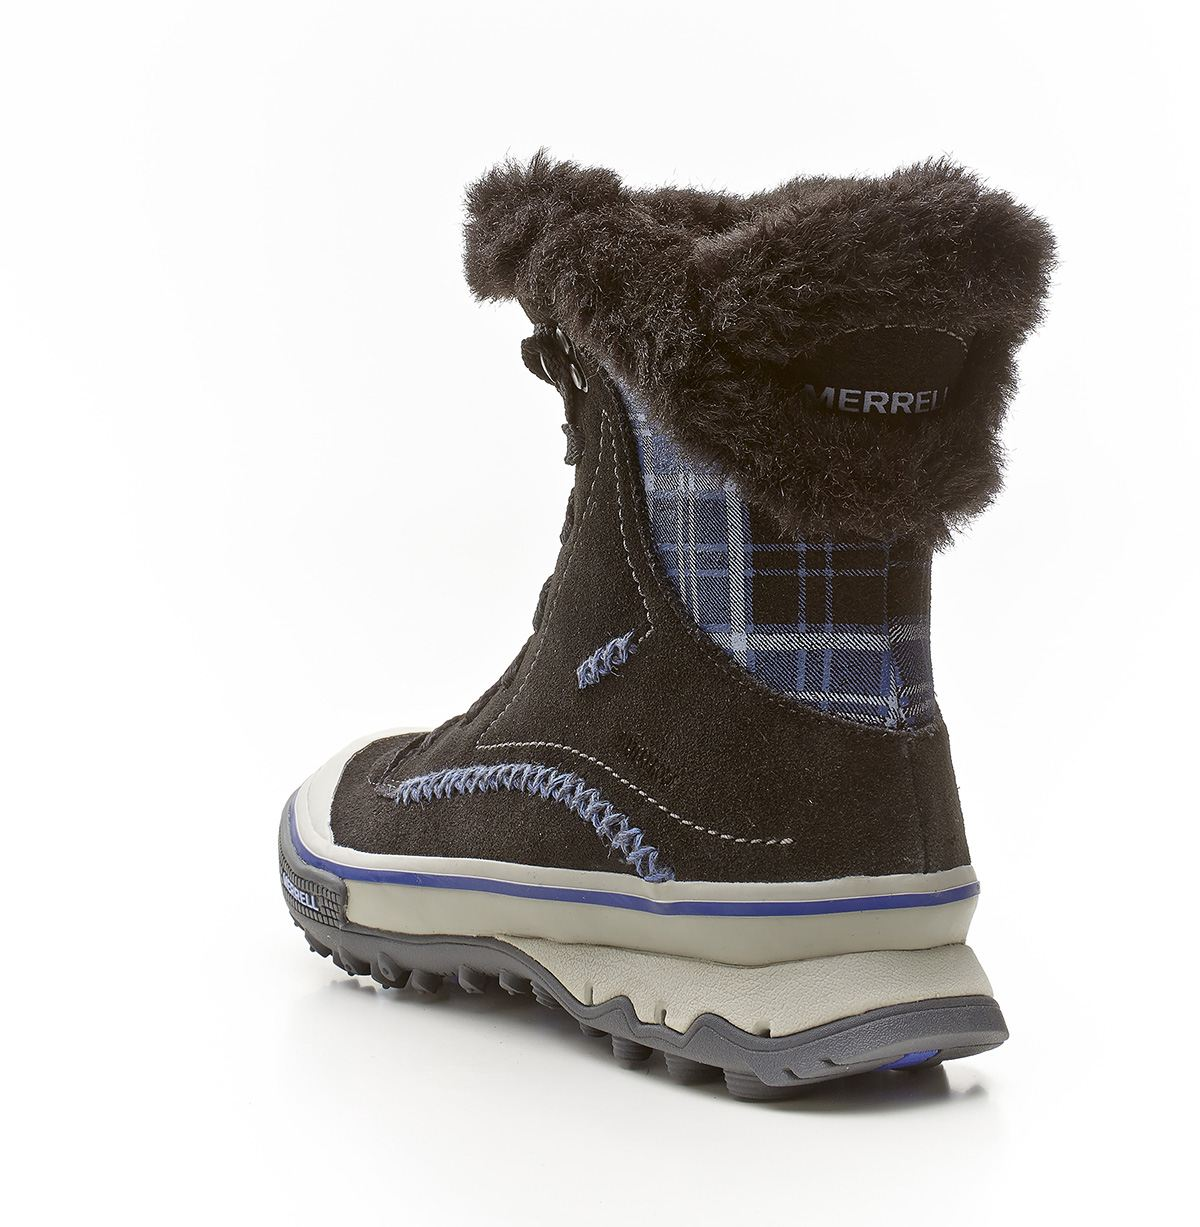 Merrell Pixie Lace Snow Boots - Waterproof Insulated (for Women ...